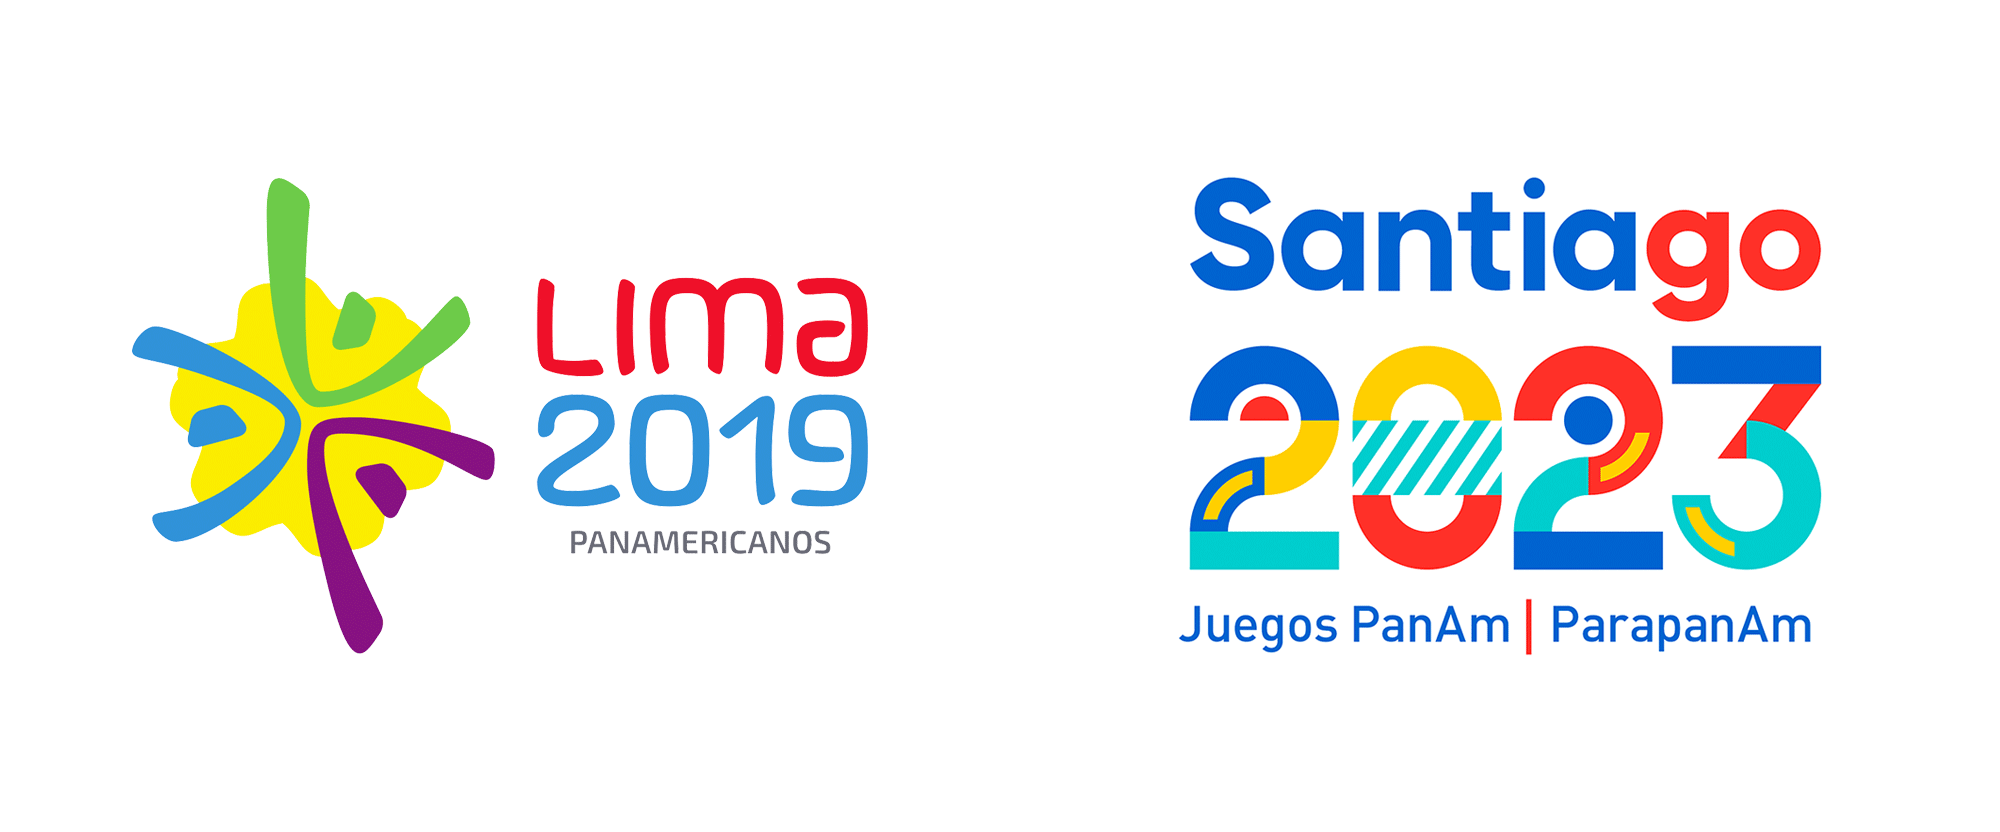 New Logo for 2023 Pan American Games